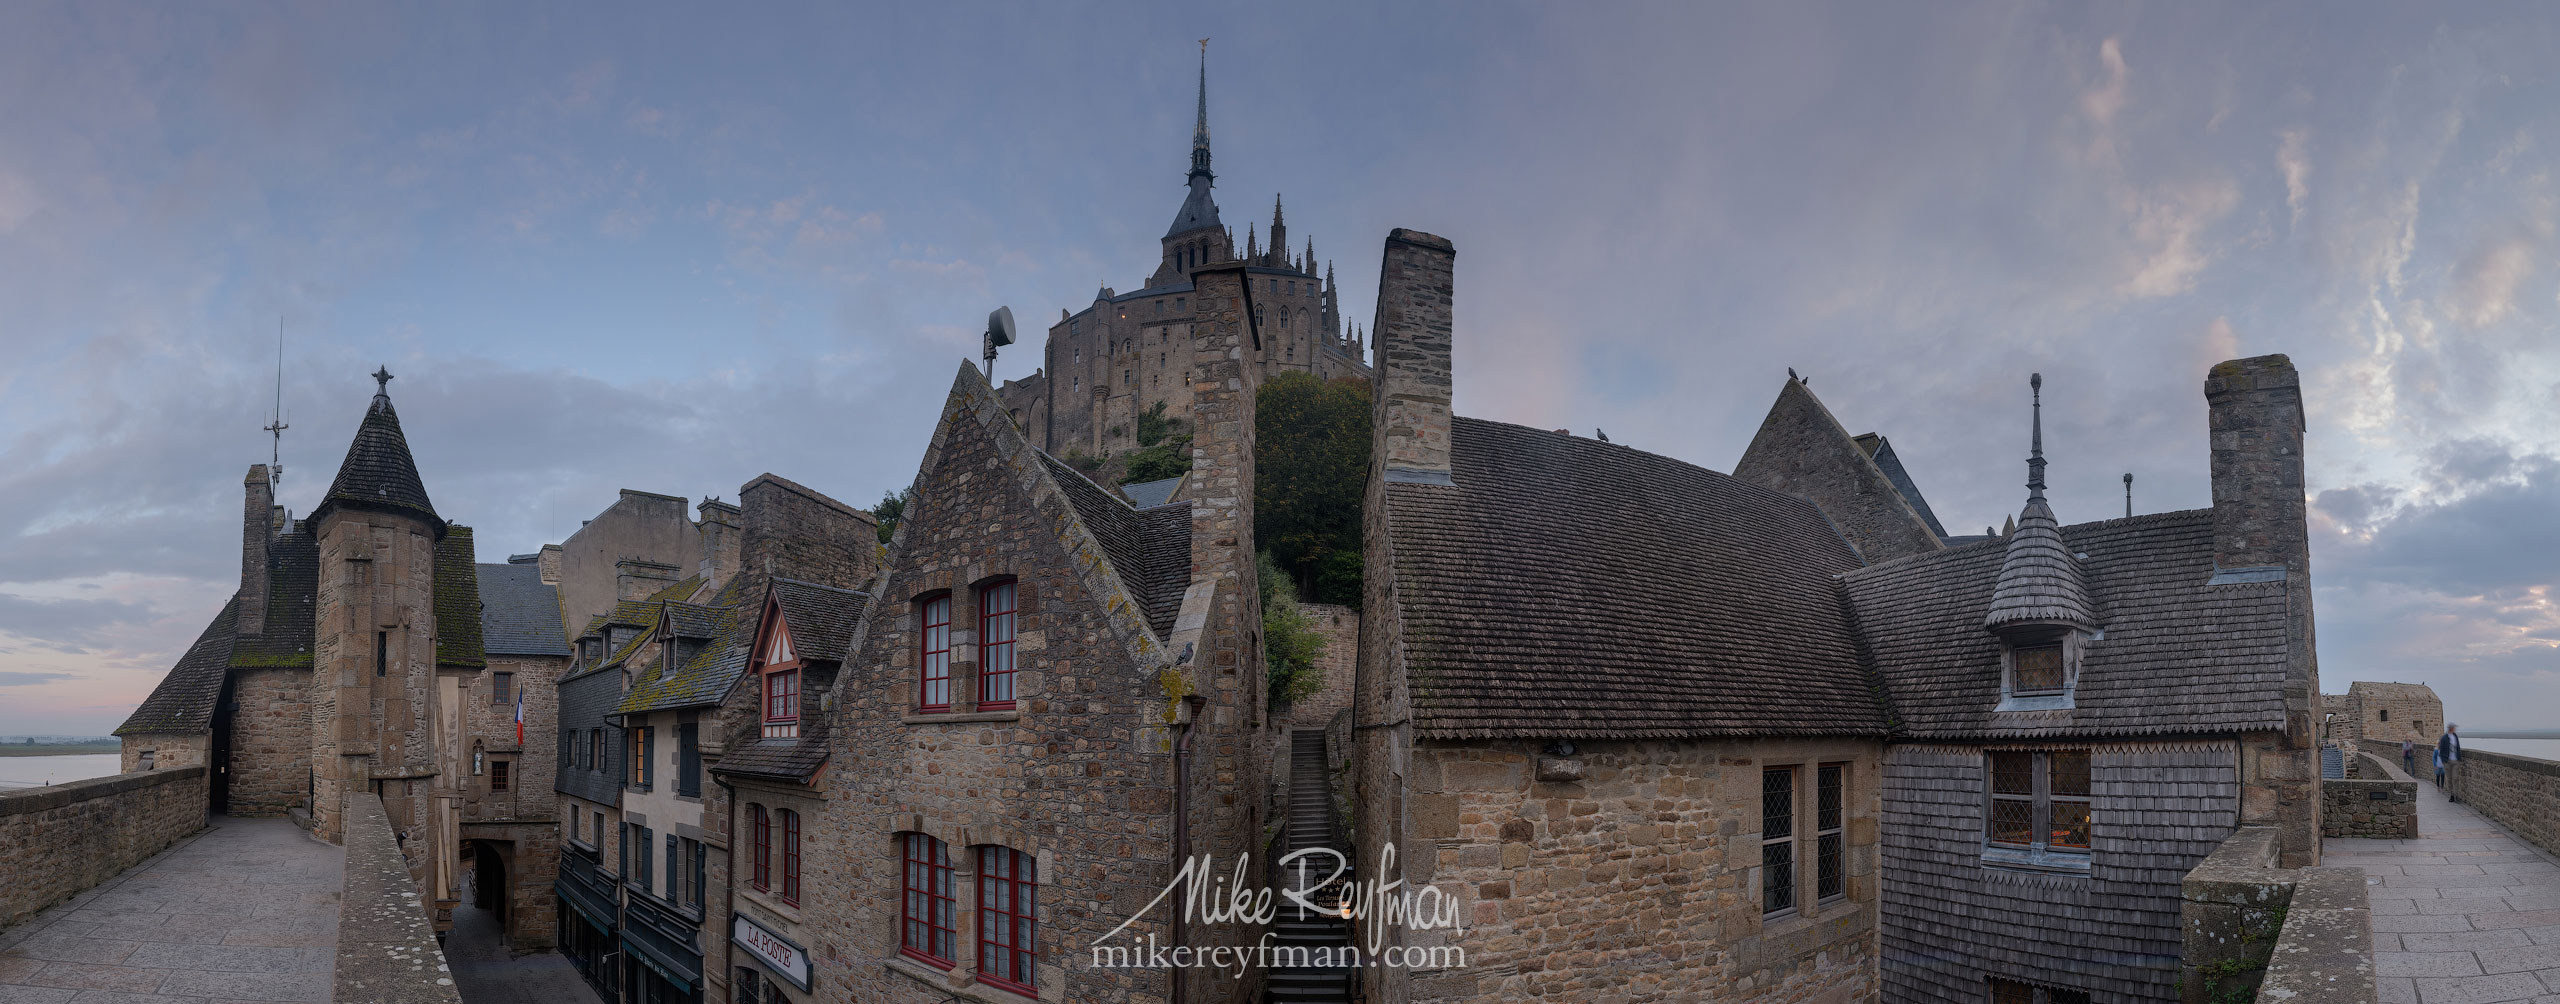 Le Mont-Saint-Michel Island and Benedictine Abbey. Normandy, France SM_MR50A1142-Pano_2x1 - Le Mont Saint Michel Island and Benedictine Abbey, Normandy, France - Mike Reyfman Photography